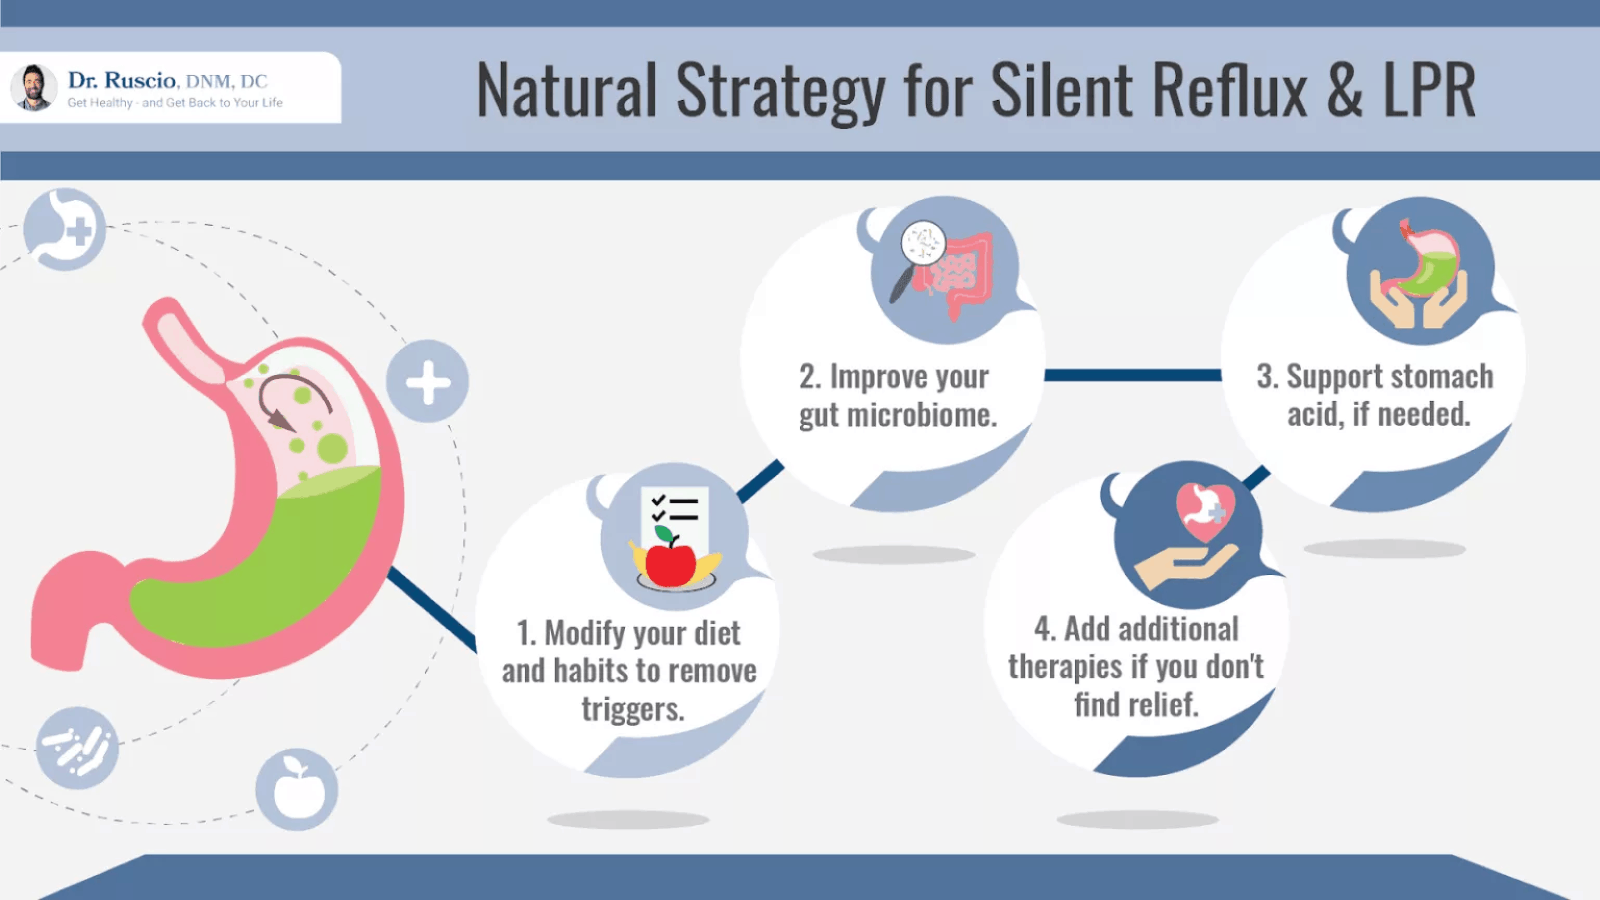 Infograph showing the natural strategy for silent reflux and LPR